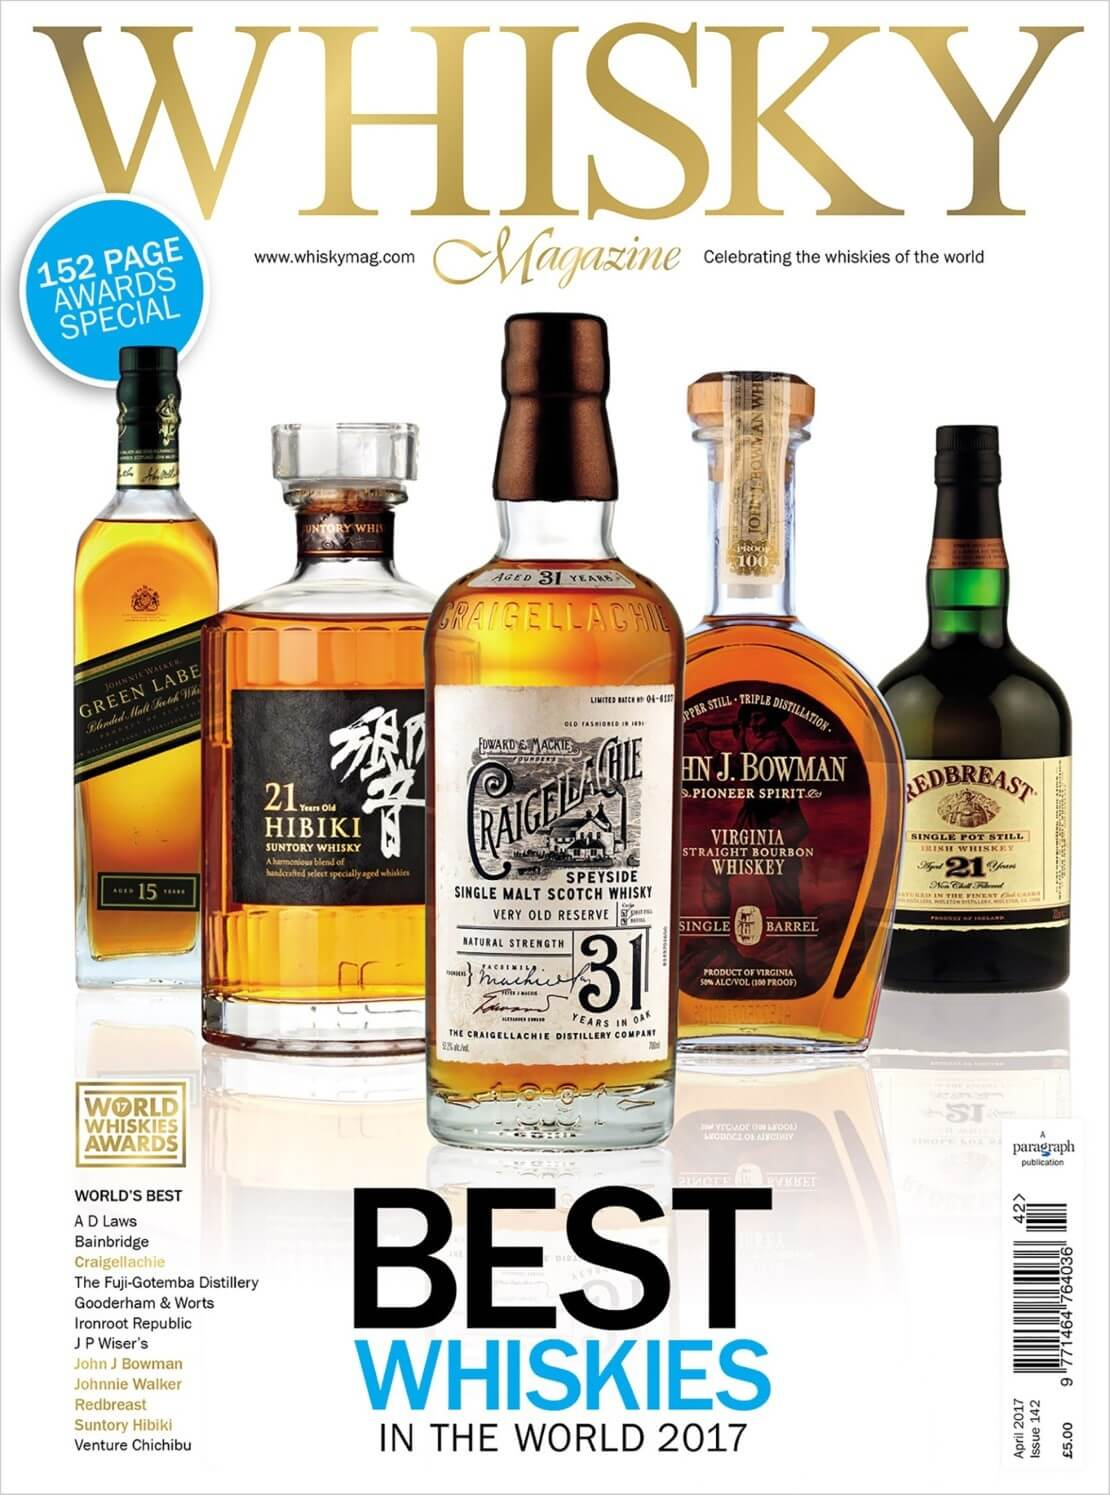 World Whiskies Awards Icons of Whisky Global winners Battle of the Blends